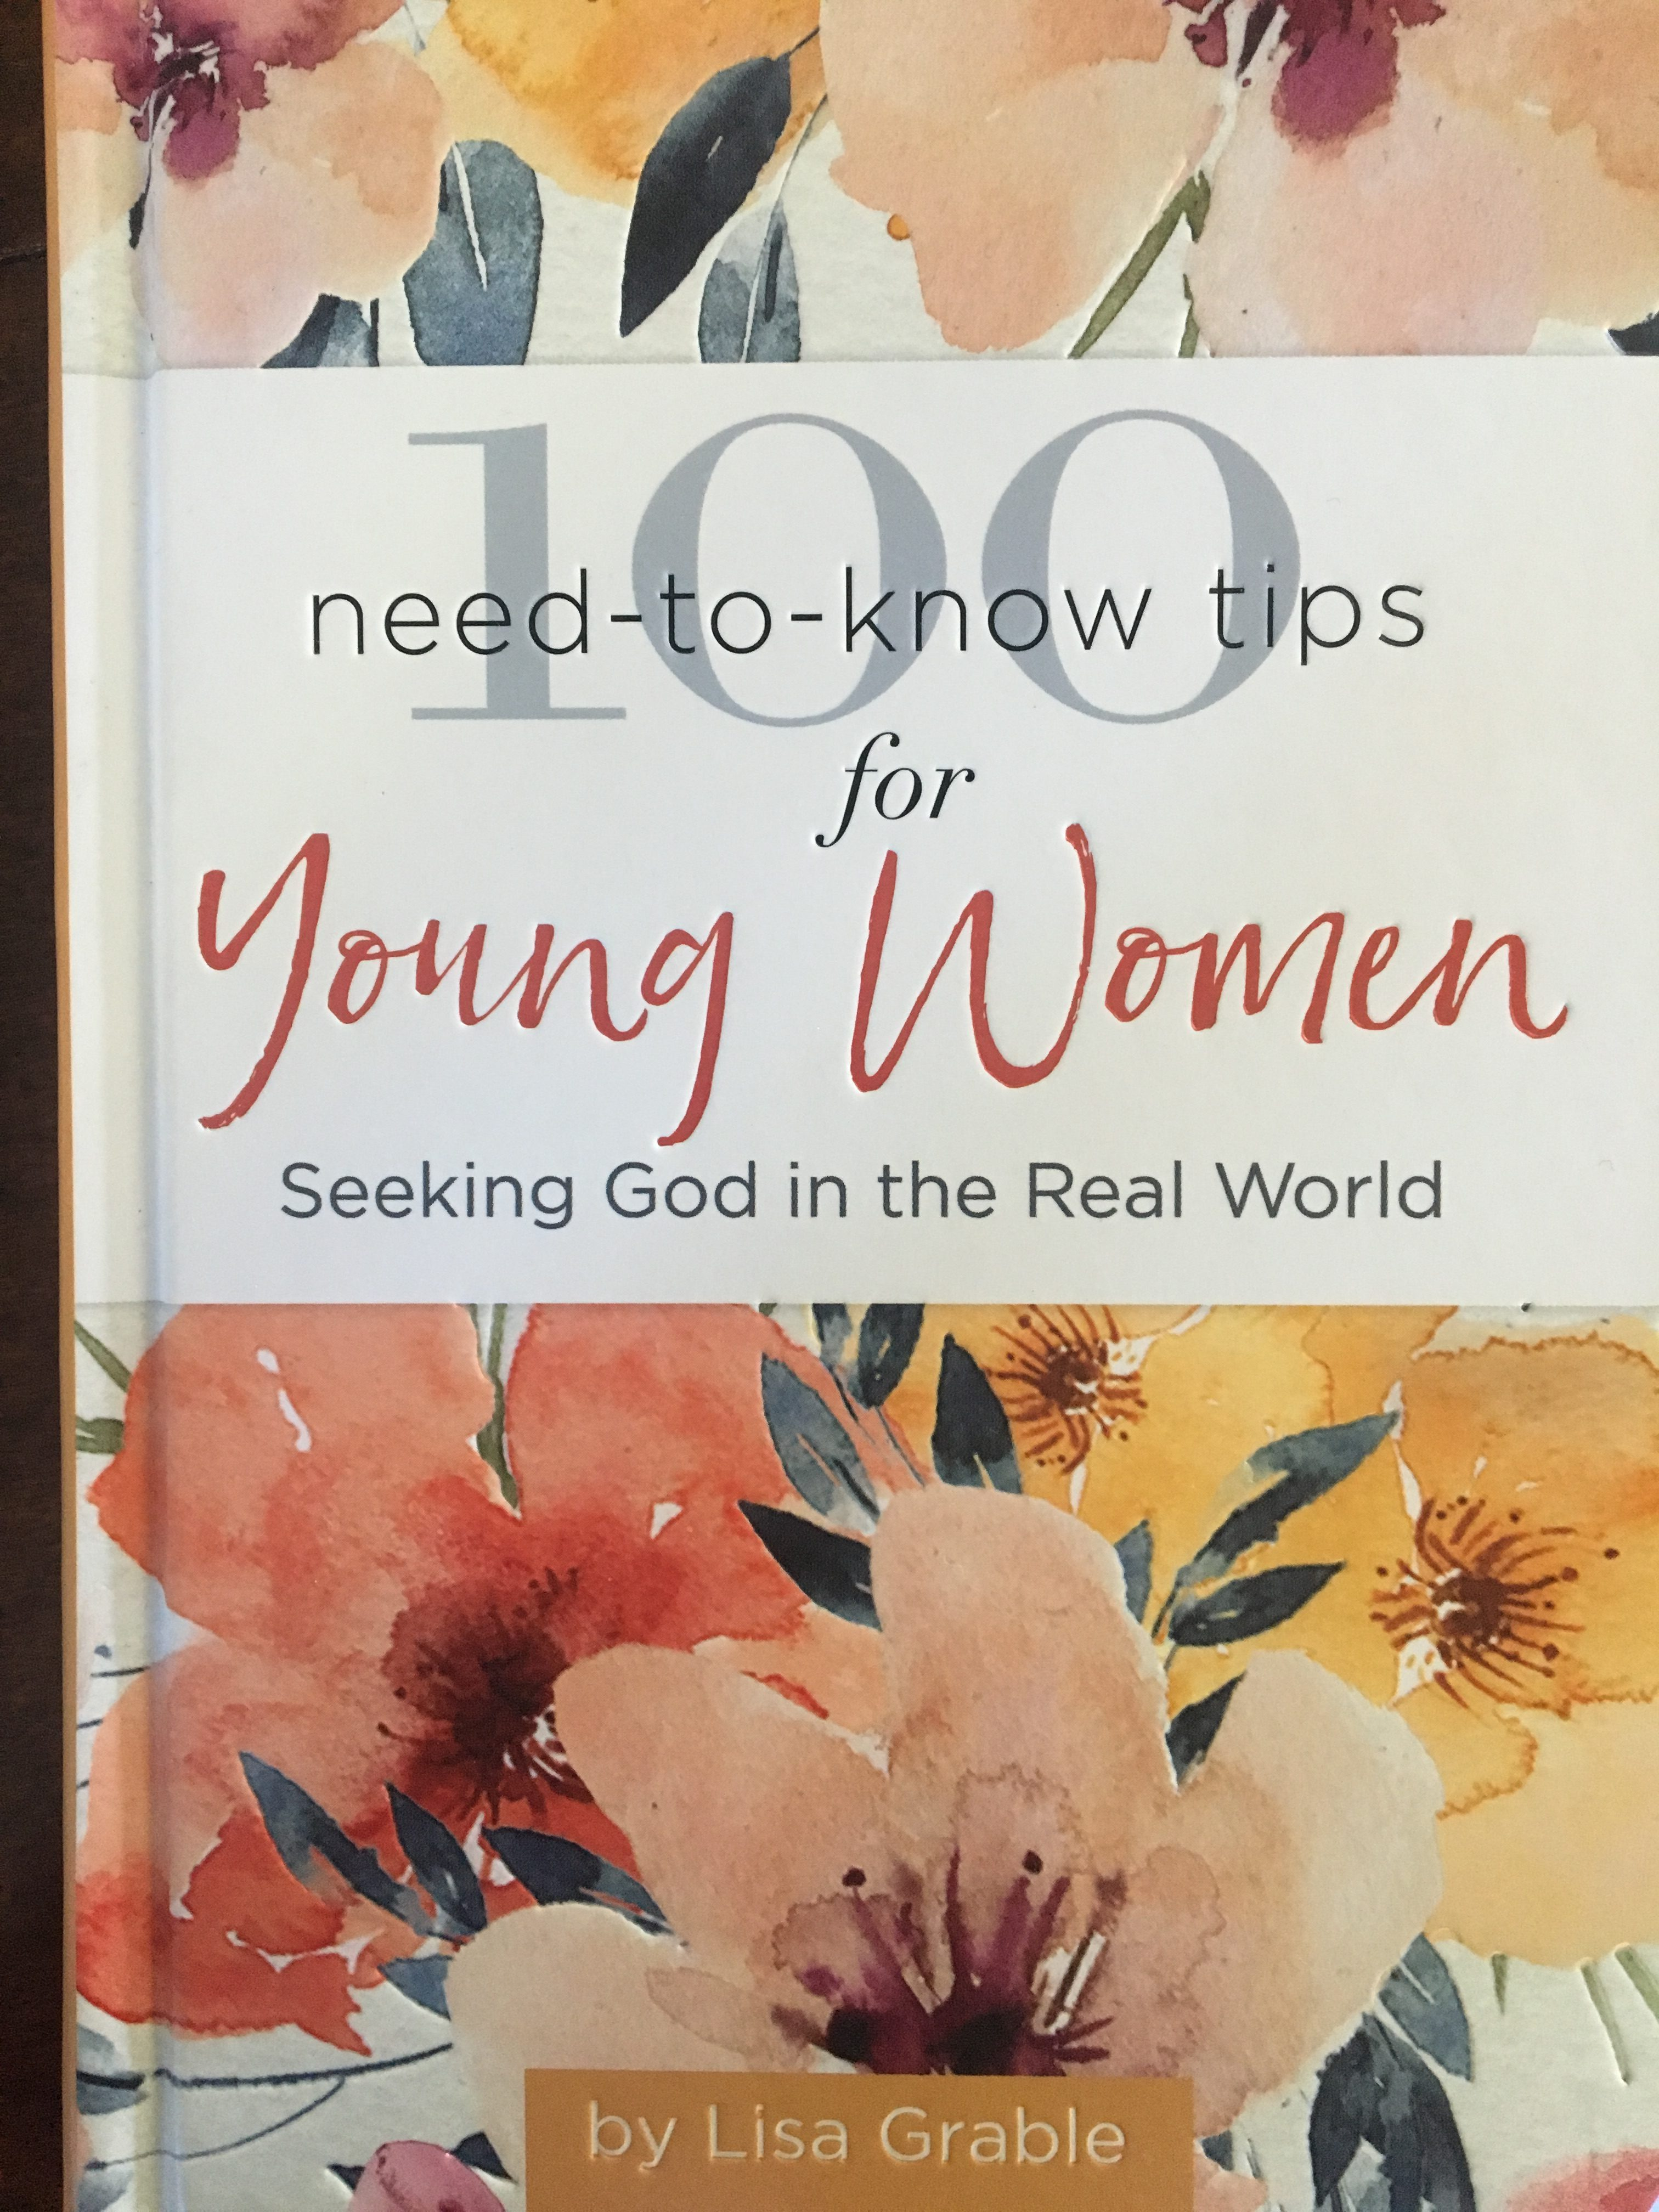 An image of Lisa Grable's book 100 need to know tips for young women seeking god in the real world